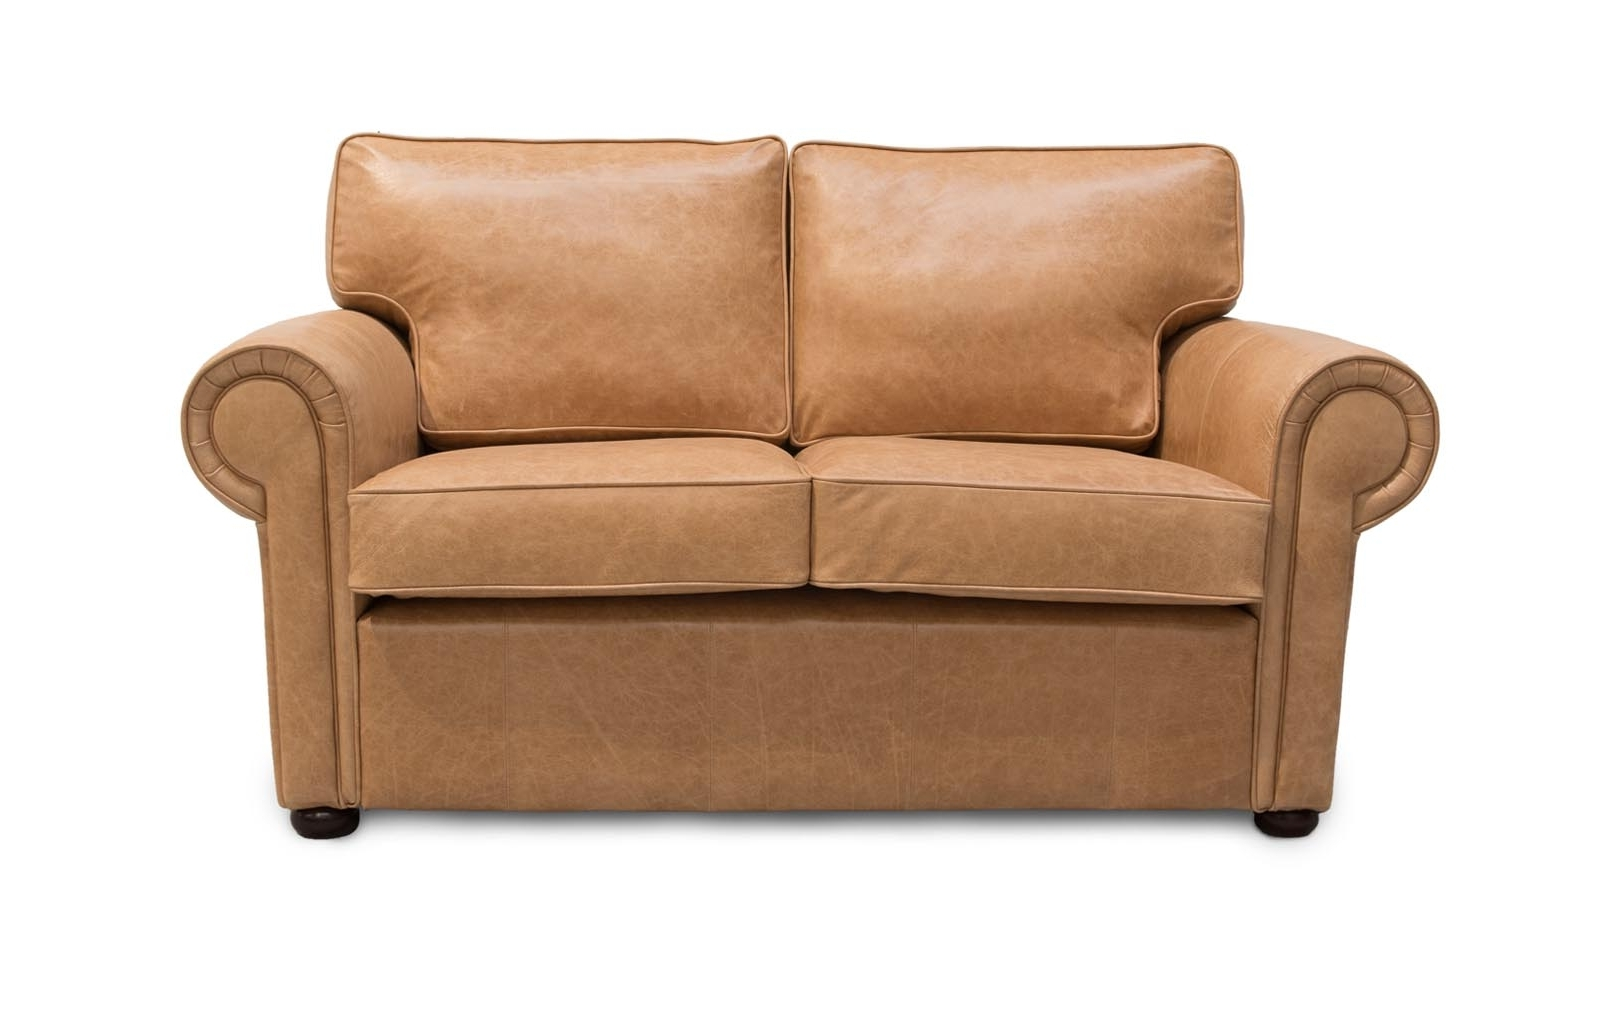 Clare Traditional Leather Sofa Bed (View 9 of 20)